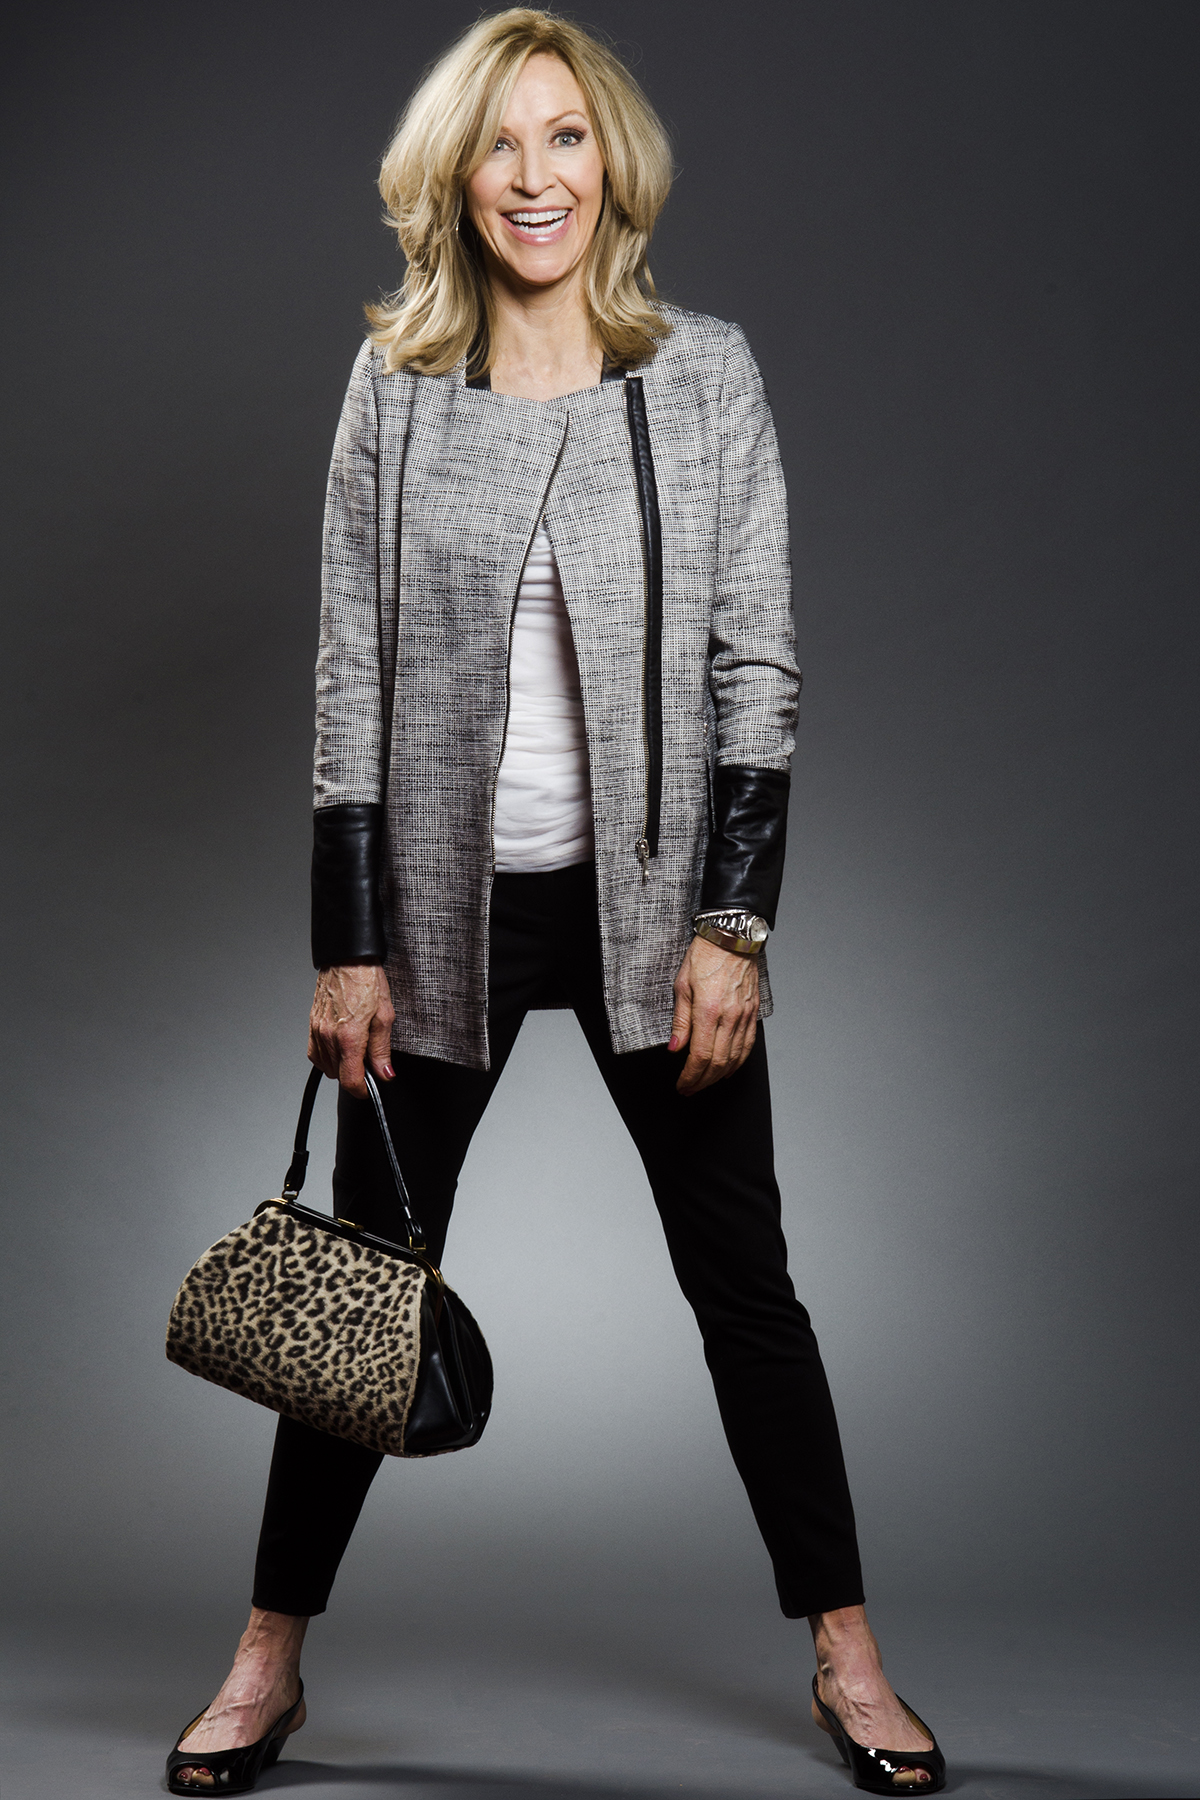 Rachel Dee is Your Personal Stylist and Image Consultant